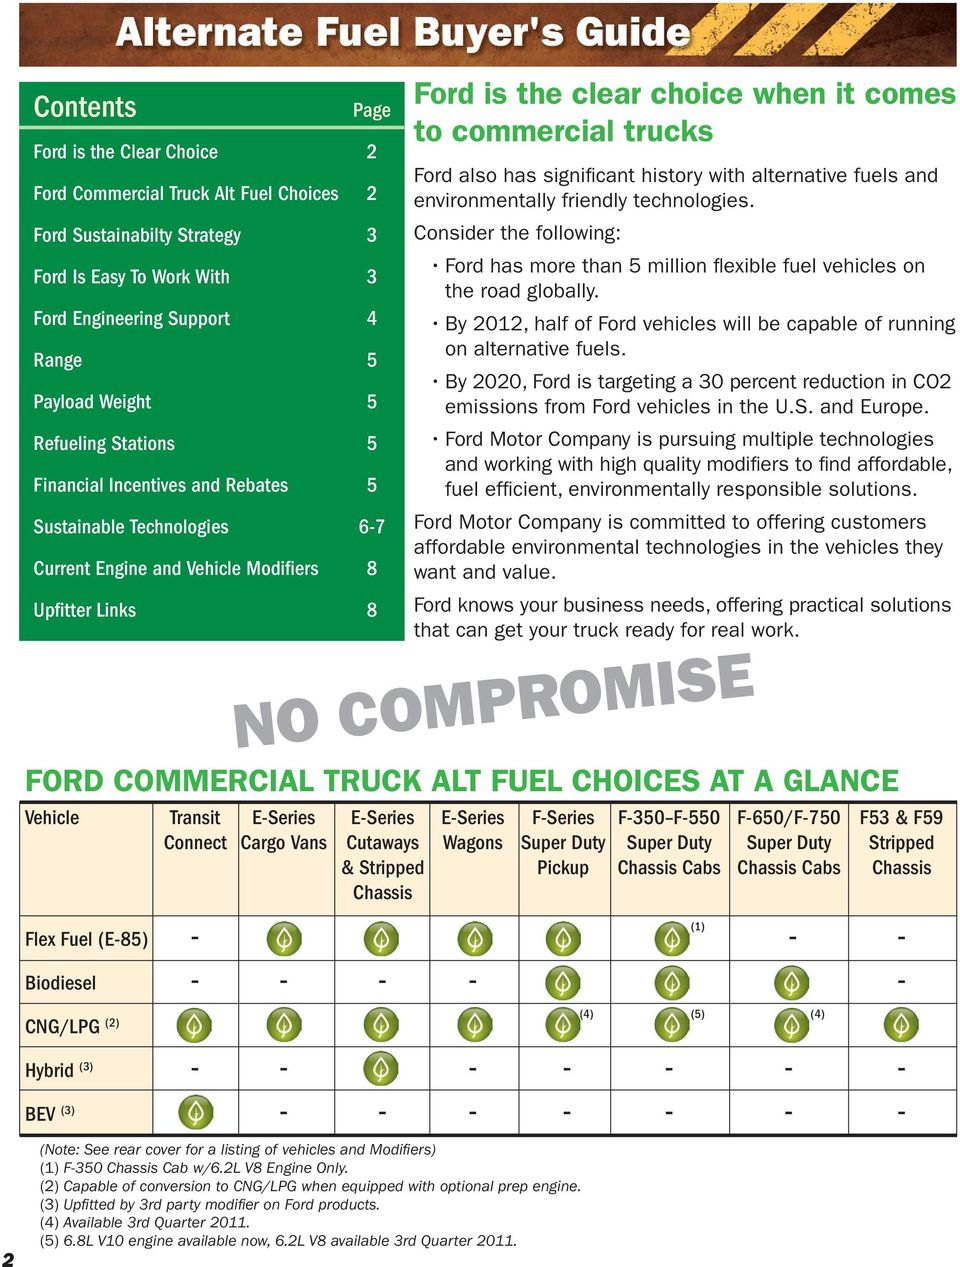 FORD COMMERCIAL TRUCK ALT FUEL CHOICES AT A GLANCE - PDF